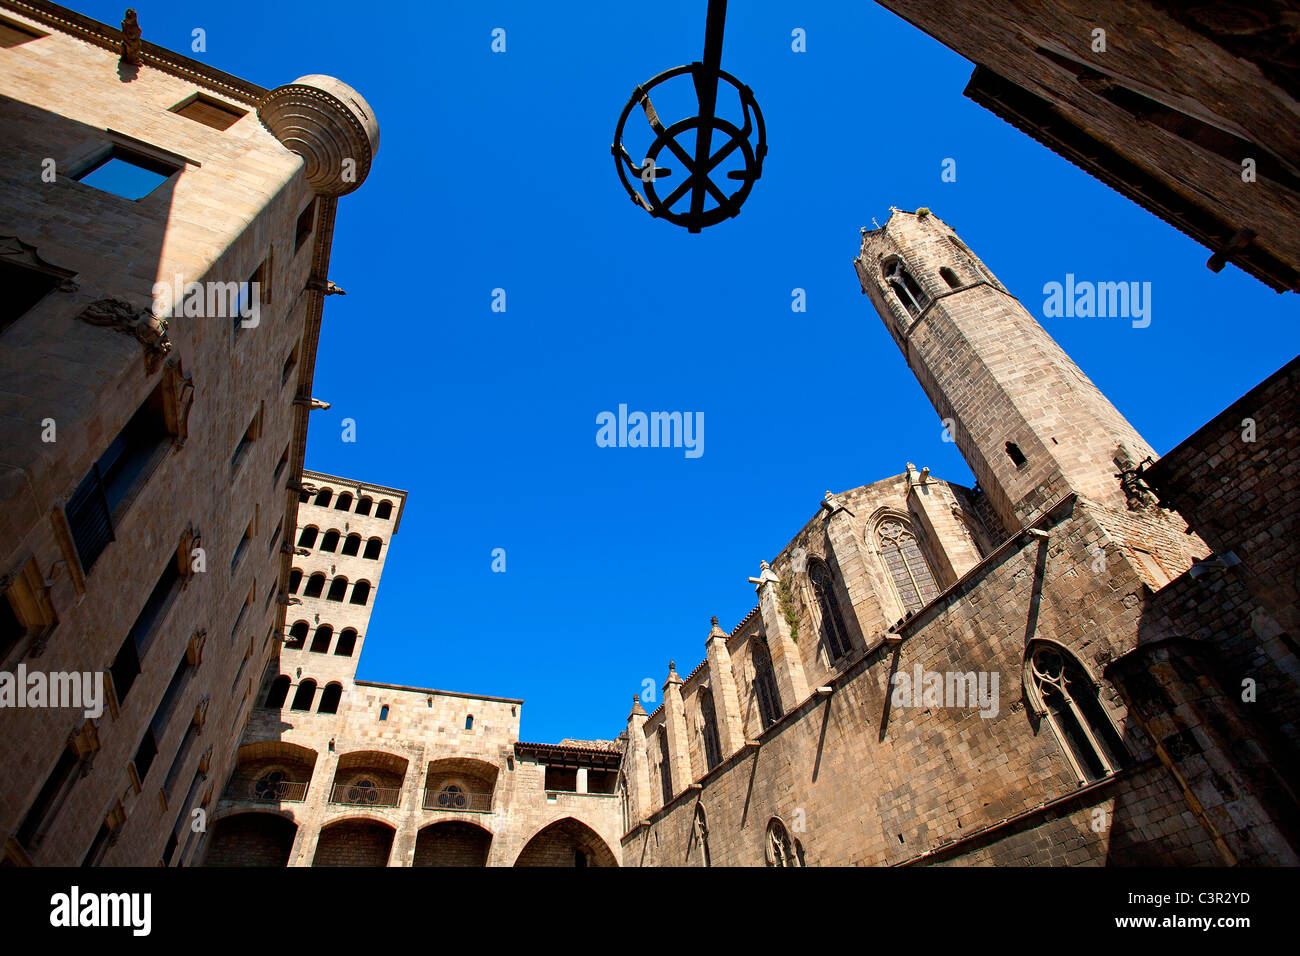 Spain, Catalonia, Barcelona, Barri Gotic district, Placa del rei - Stock Image